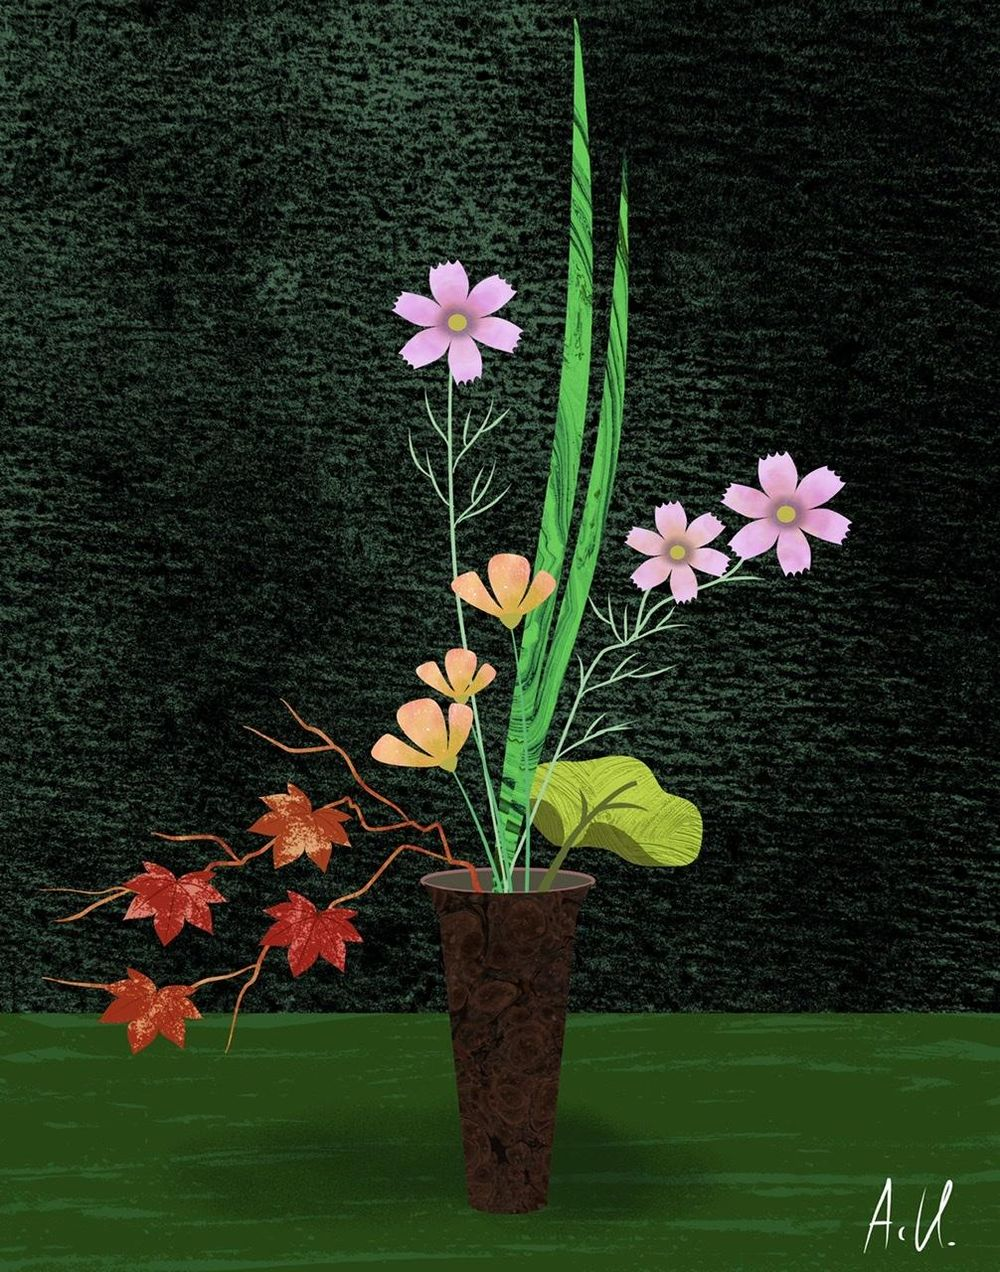 Autumn Flowers - image 1 - student project